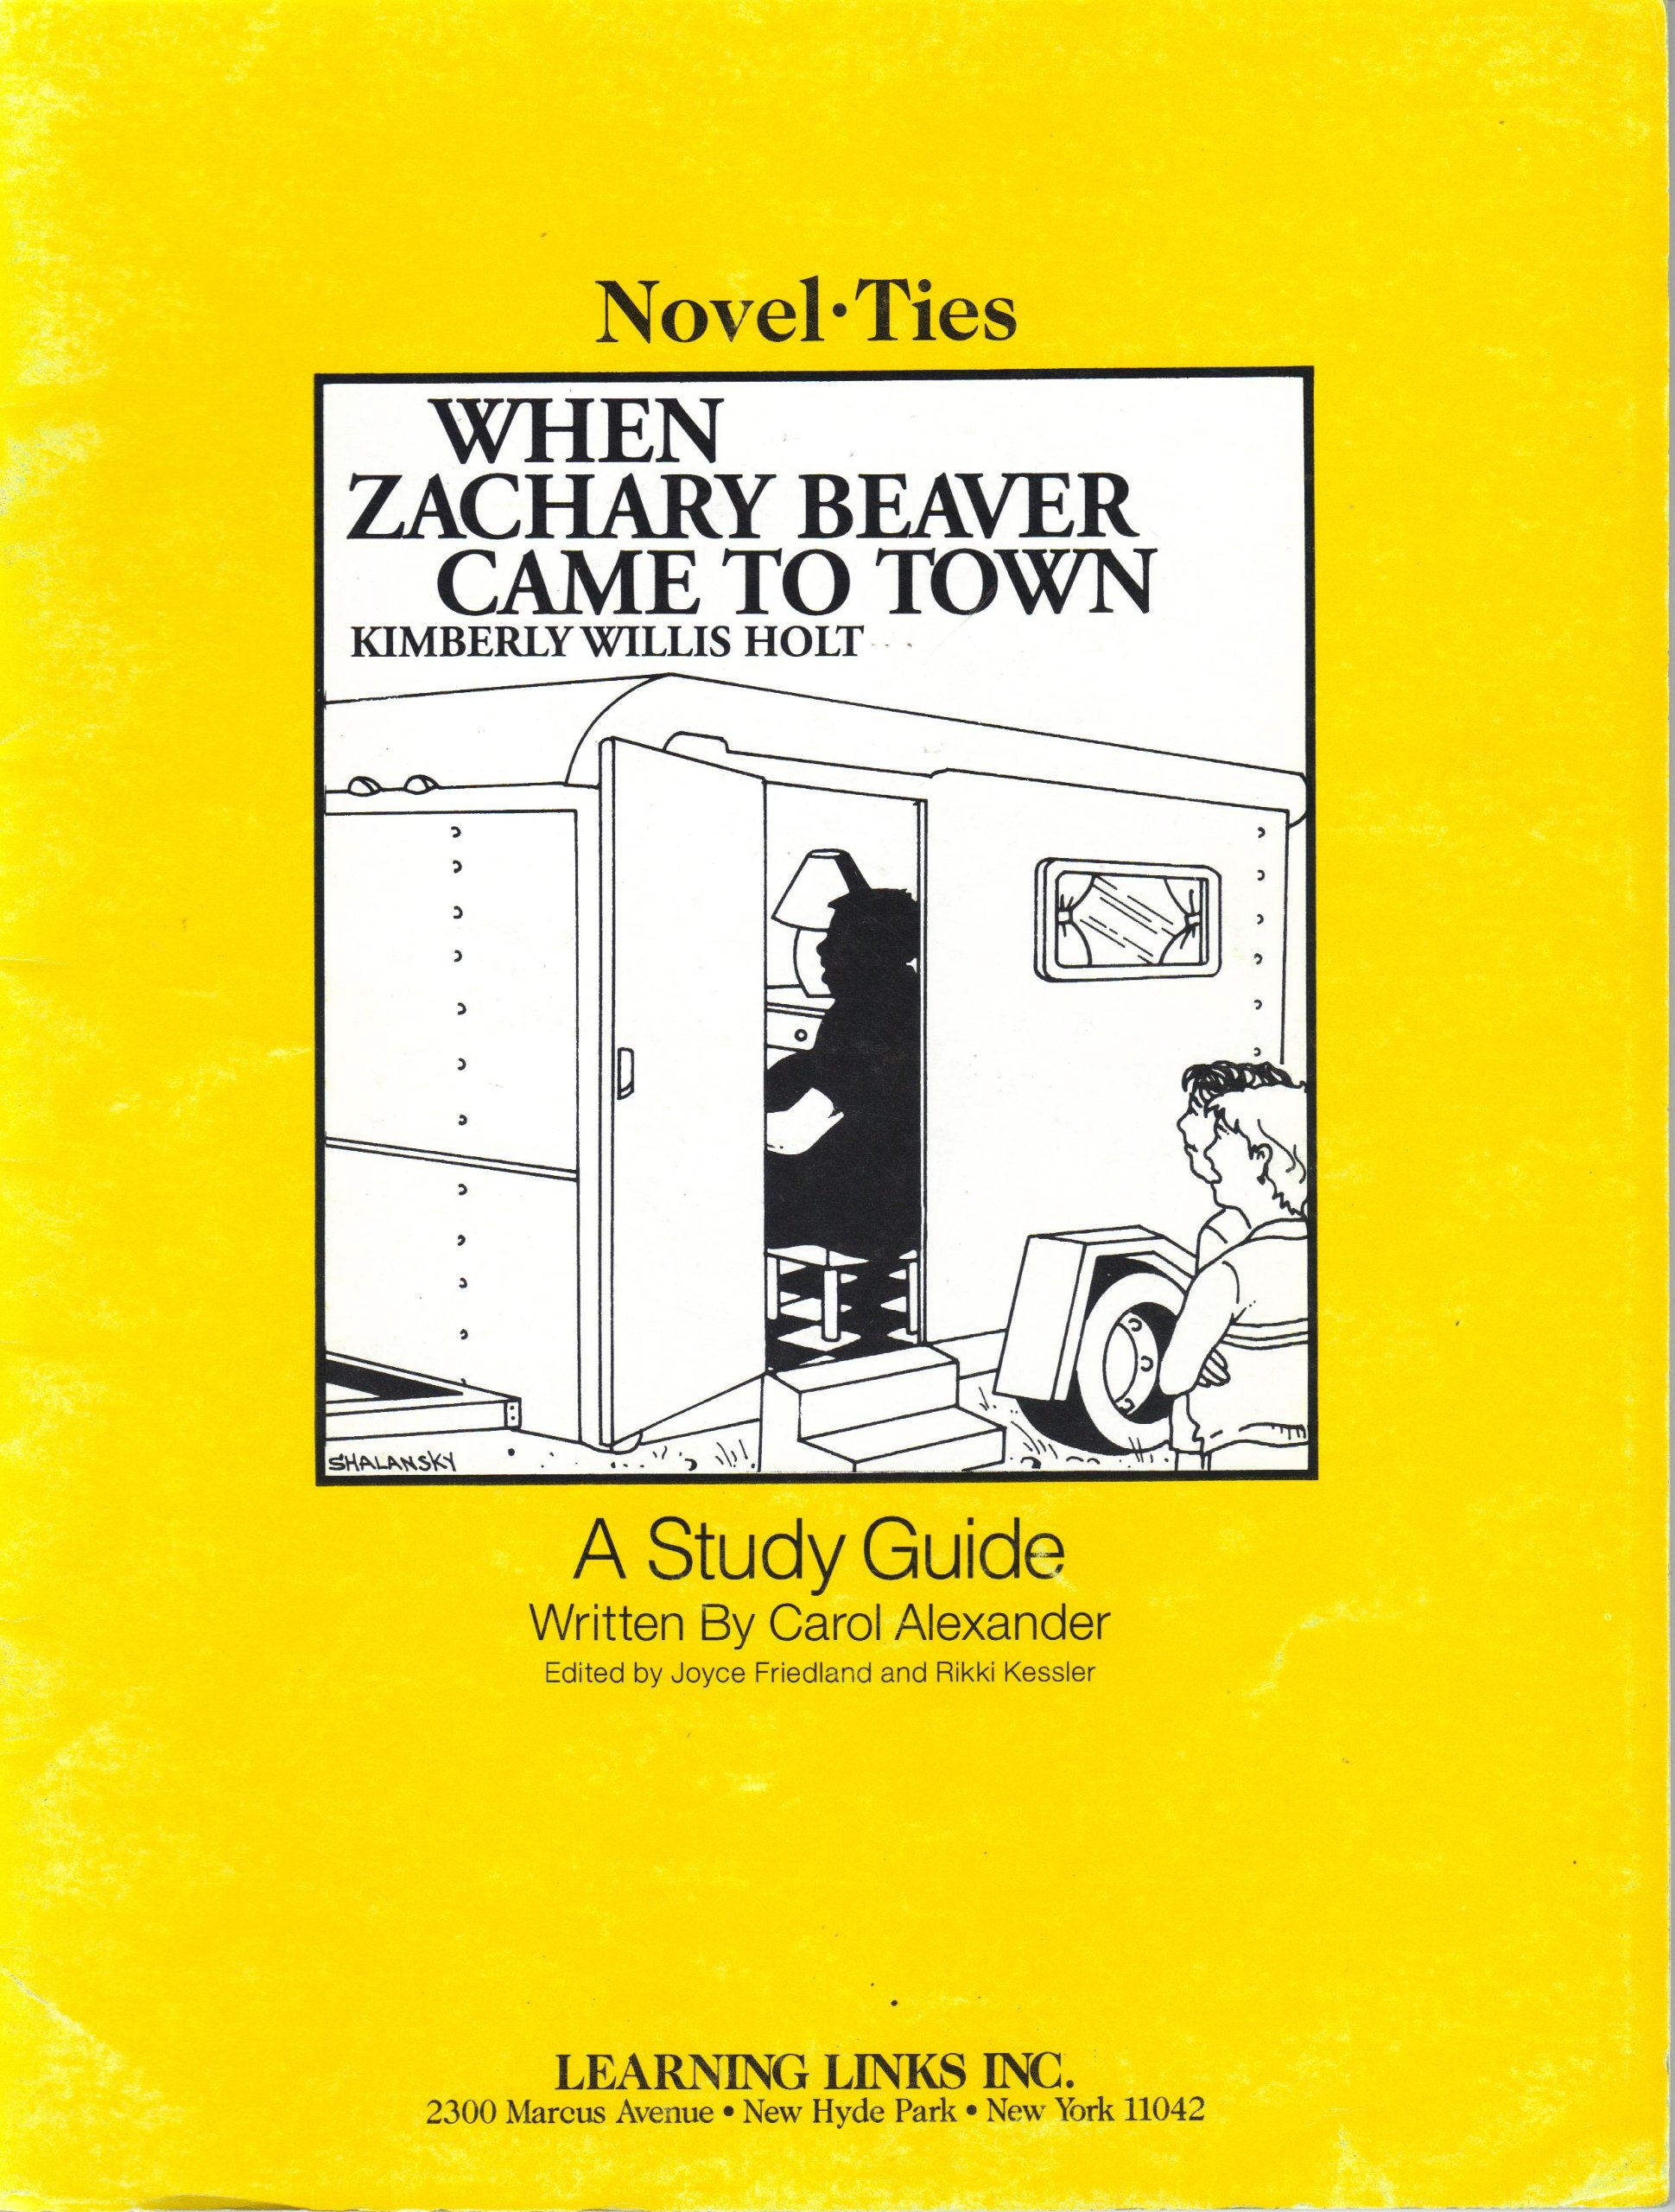 Novel-Ties, When Zachary Beaver Came to Town, A STUDY GUIDE